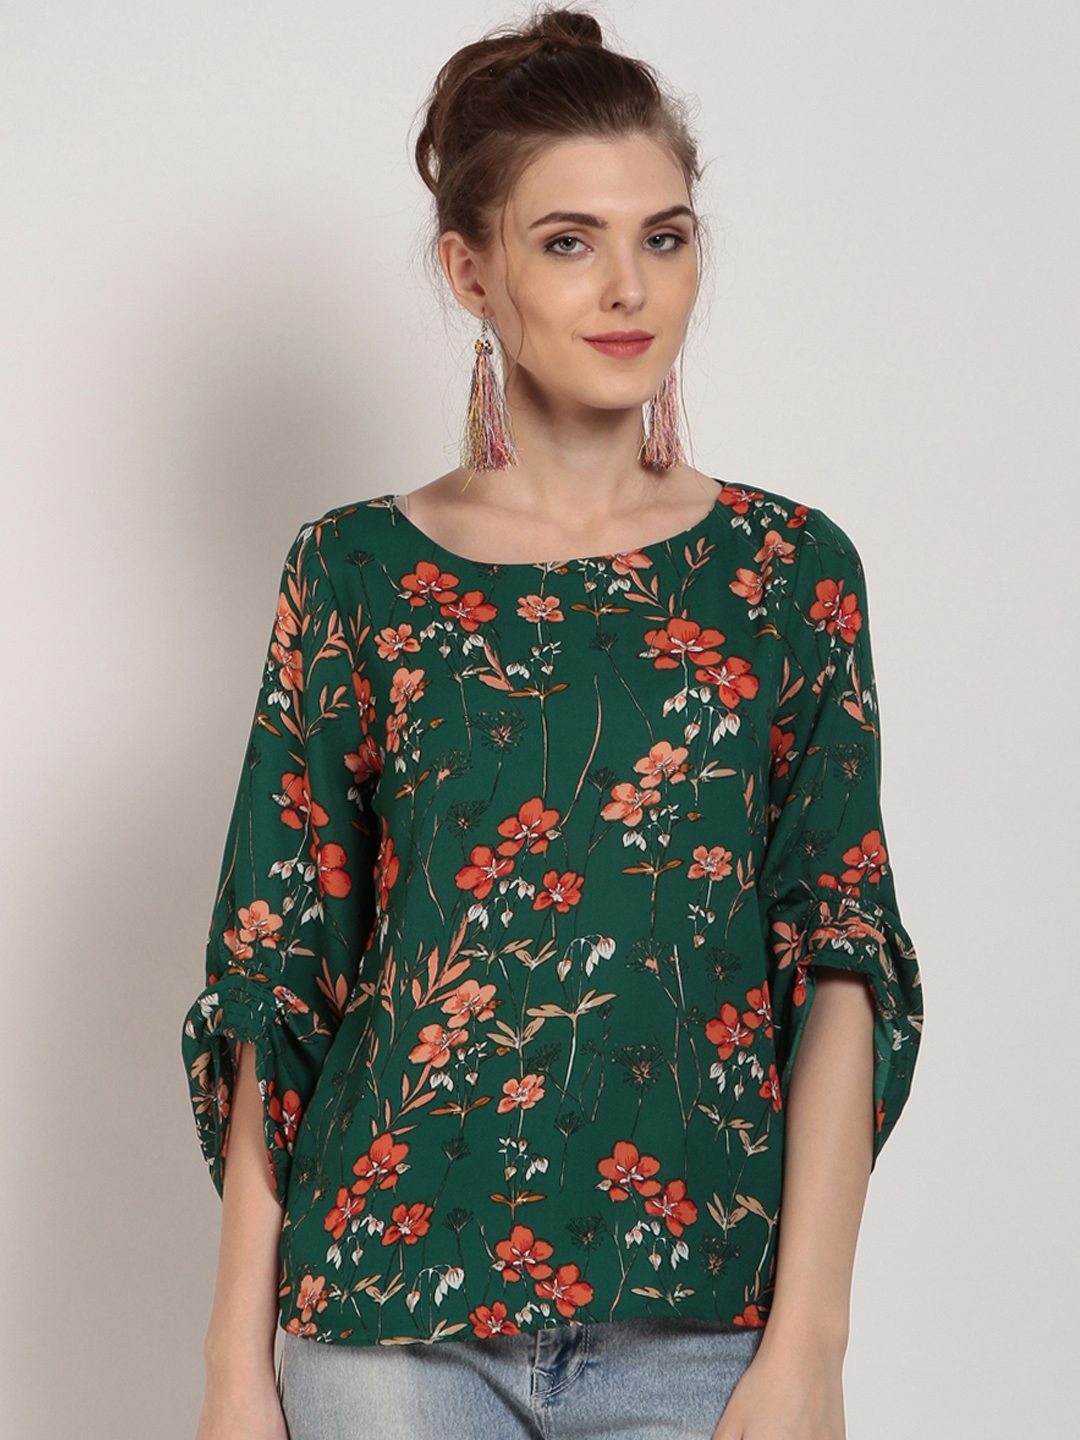 ca8f3e21d706 Buy RARE Women Green Floral Print Top - Tops for Women 5803886 | Myntra